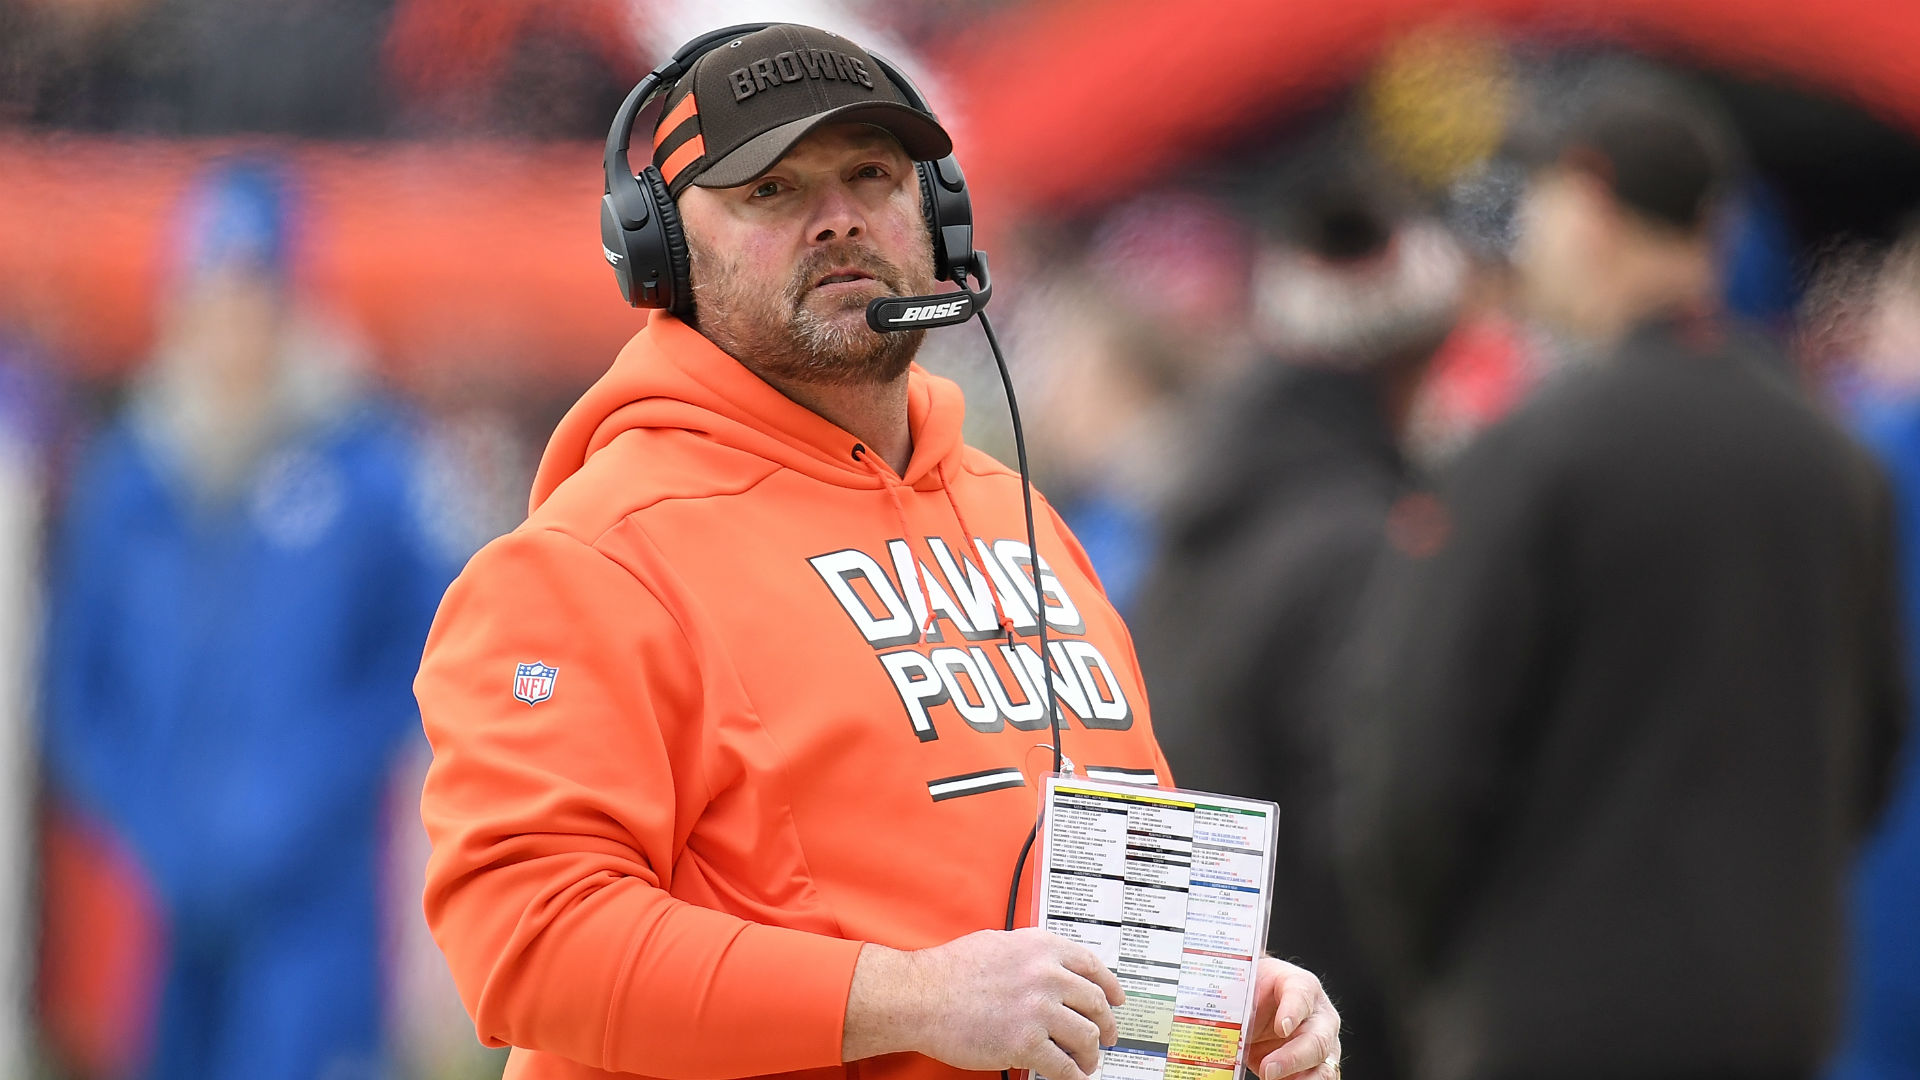 After his impressive work with Baker Mayfield and a Browns team which won seven games, Freddie Kitchens has been named head coach.